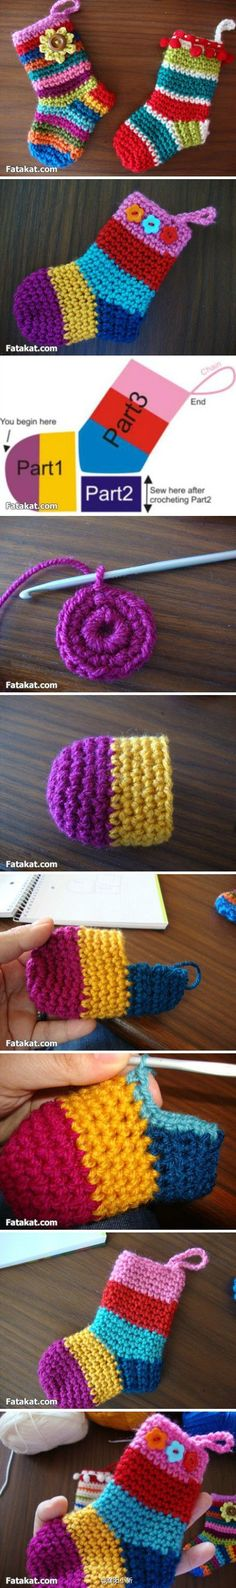 Step by step tutorial for crocheting a beautiful colorful baby bootie. Free pattern for beginner crocheter.